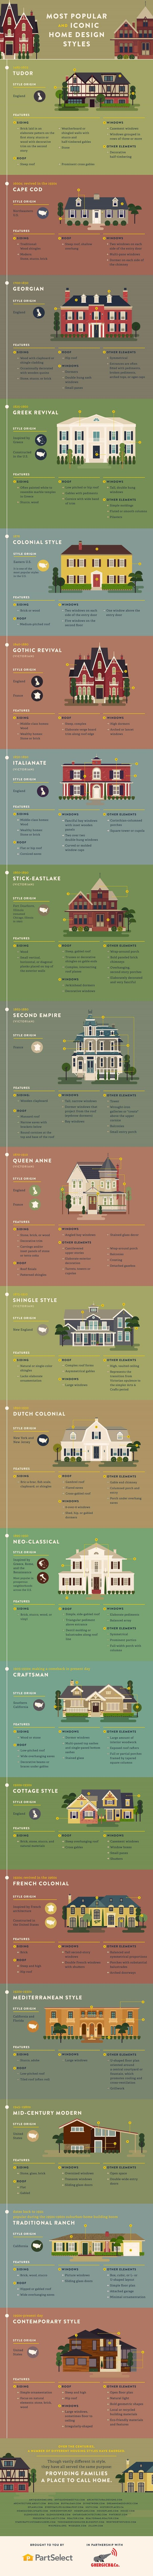 Brush Up Your Architectural Knowledge By Spotlighting The Features and Differences Between Some Of The Most Popular Styles Today. -RealtorMag. #HomeBuyerTips